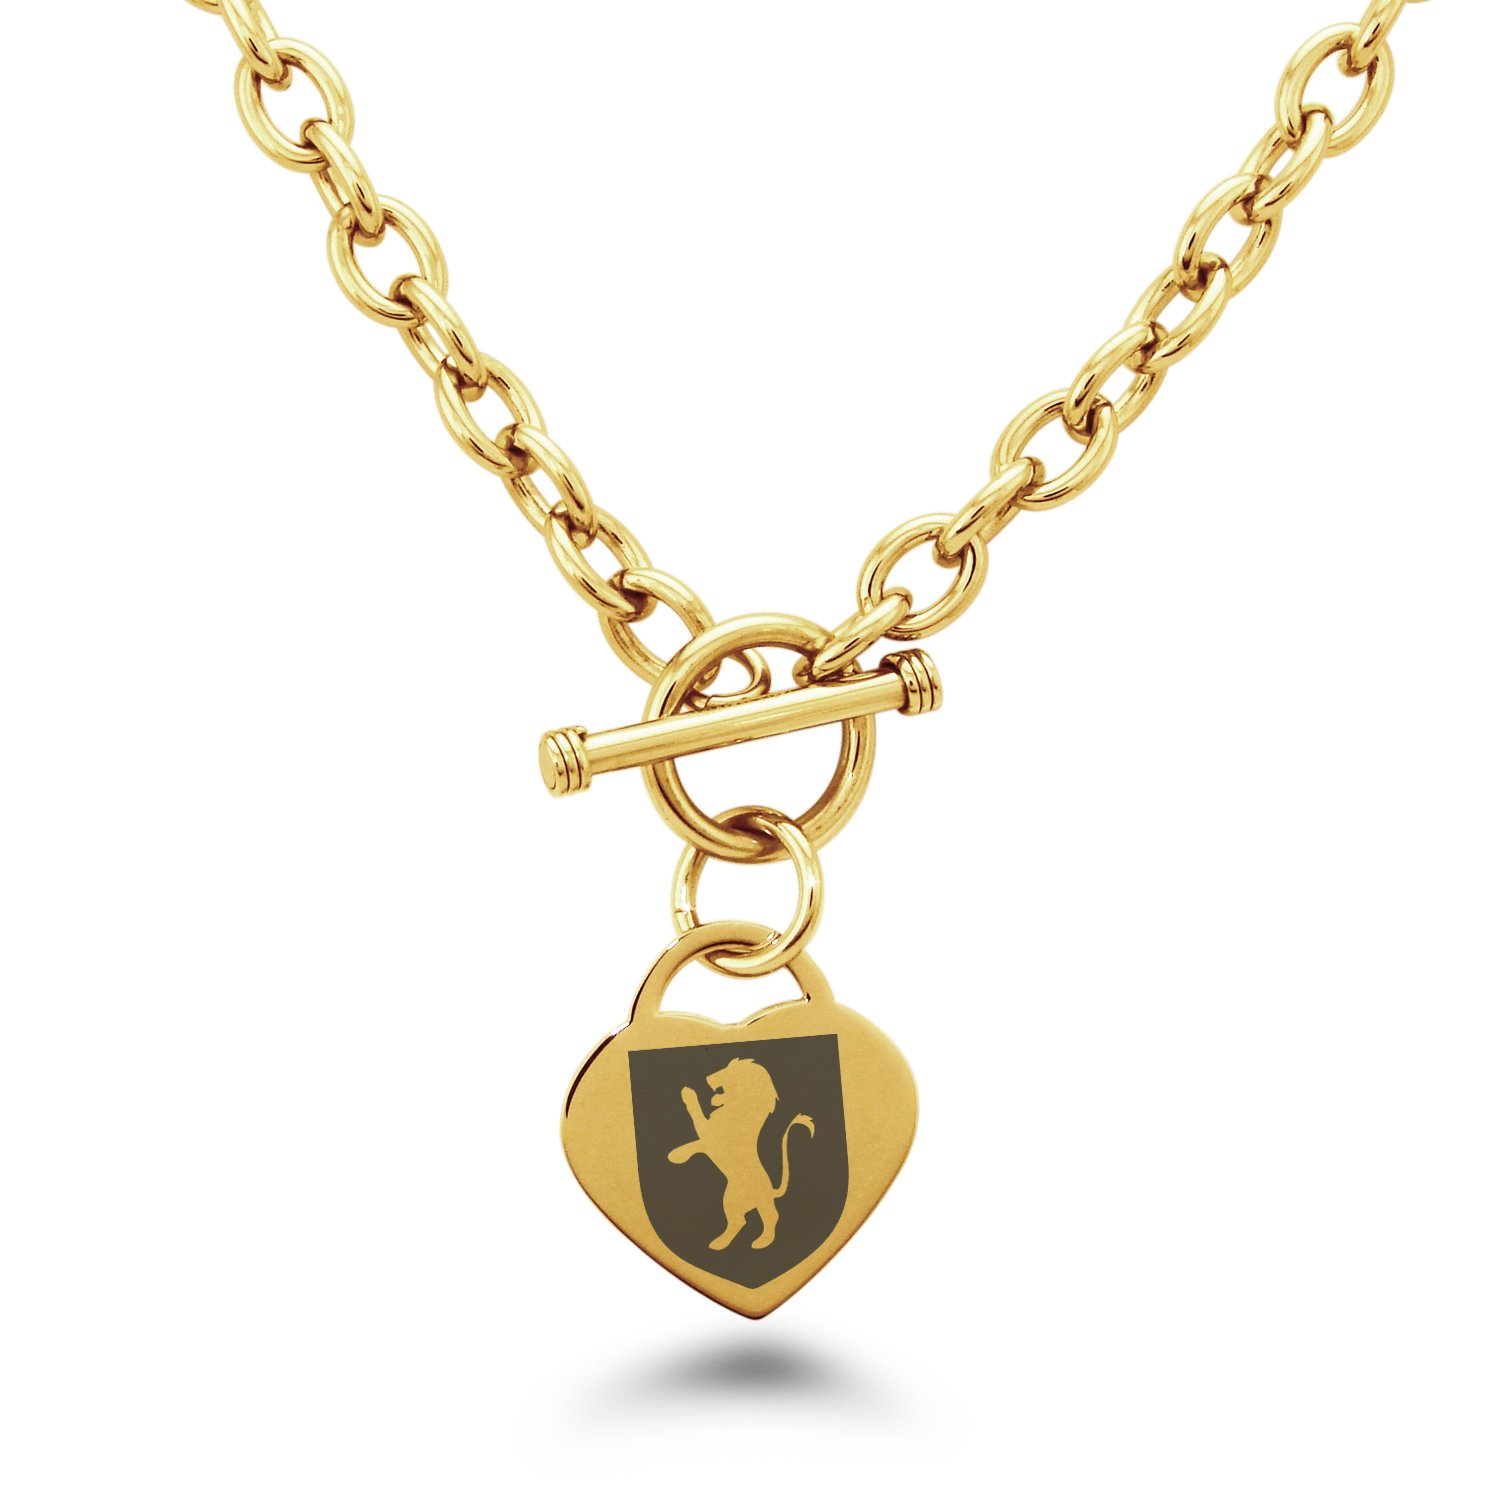 Gold Plated Stainless Steel Lion Courage Coat of Arms Shield Symbols Heart Charm, Necklace Only